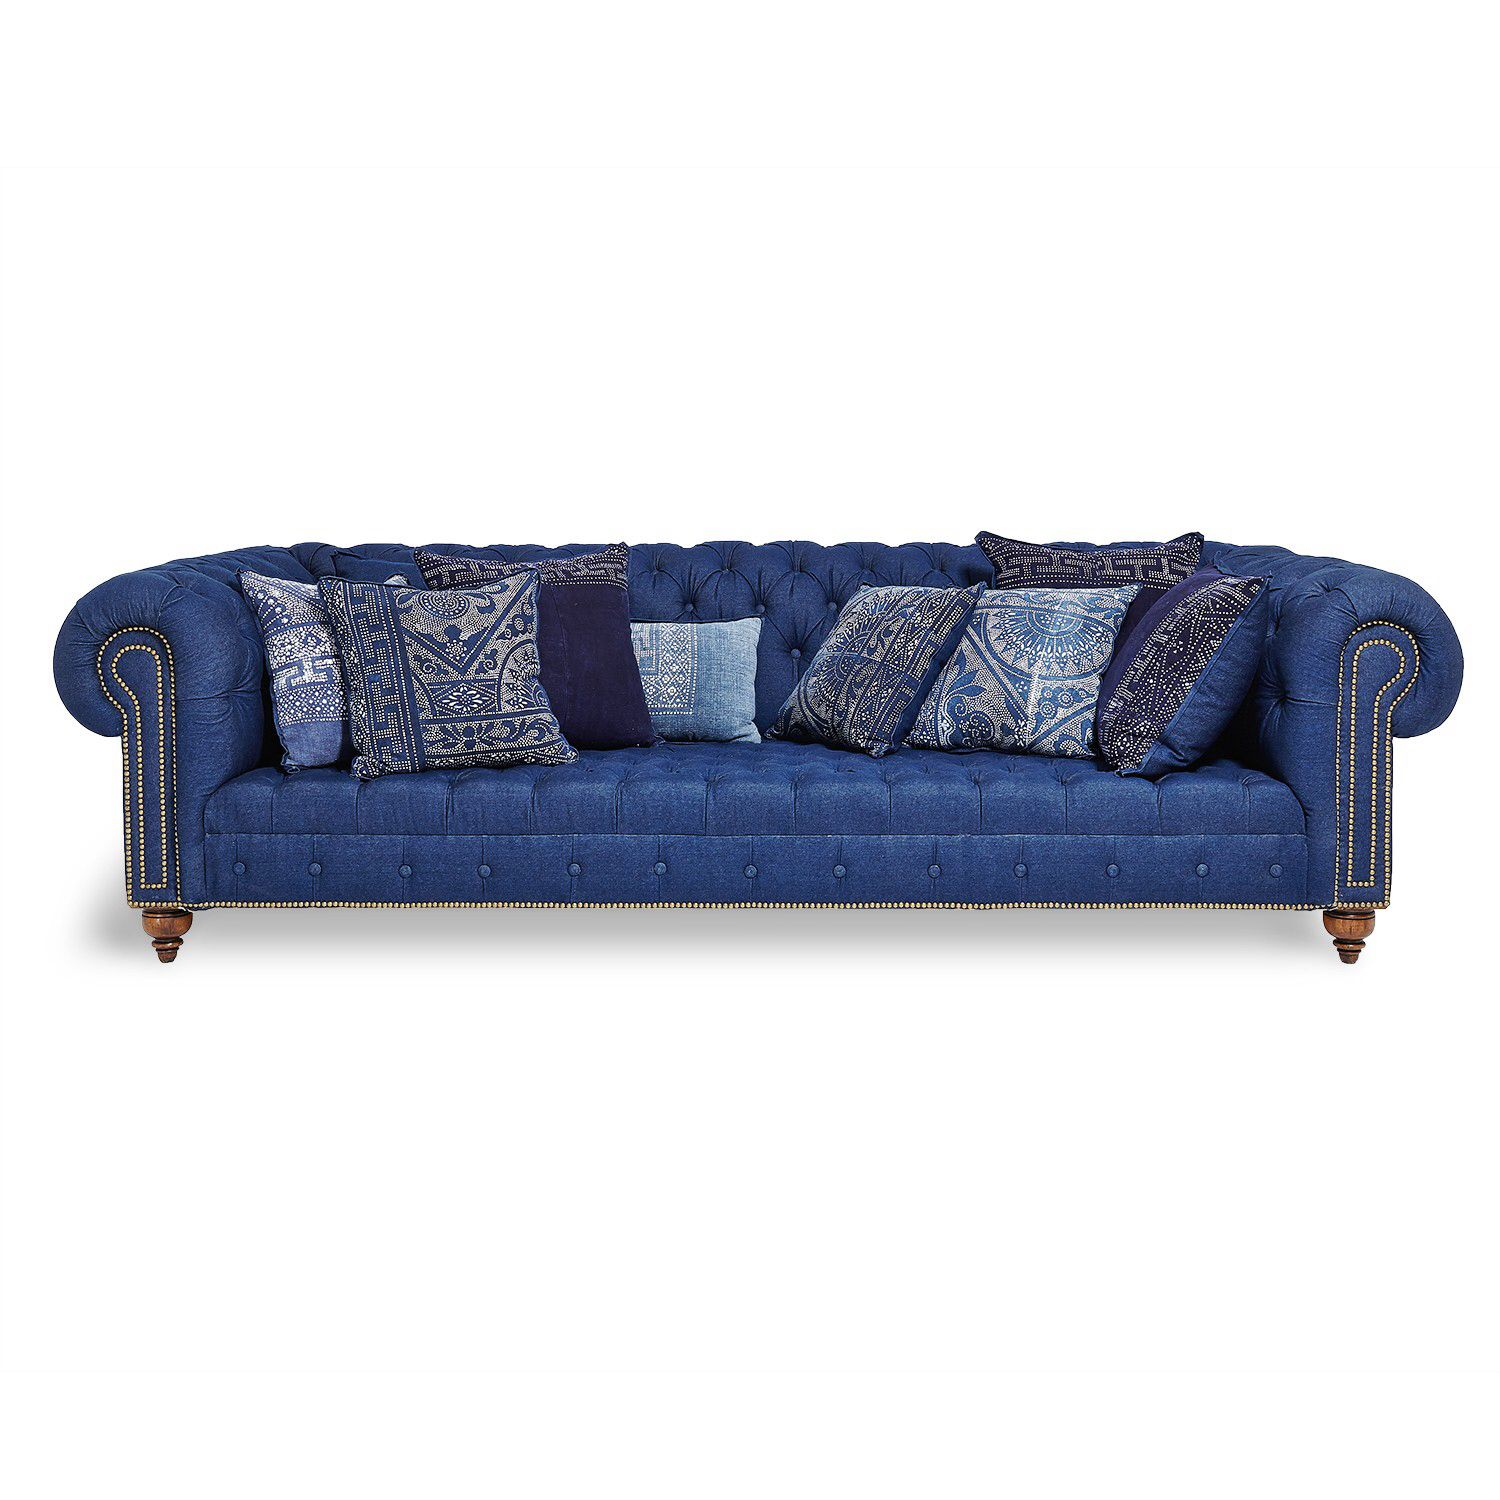 Sofa Pillows Chesterfield Style Sofa Chesterfield Sofa